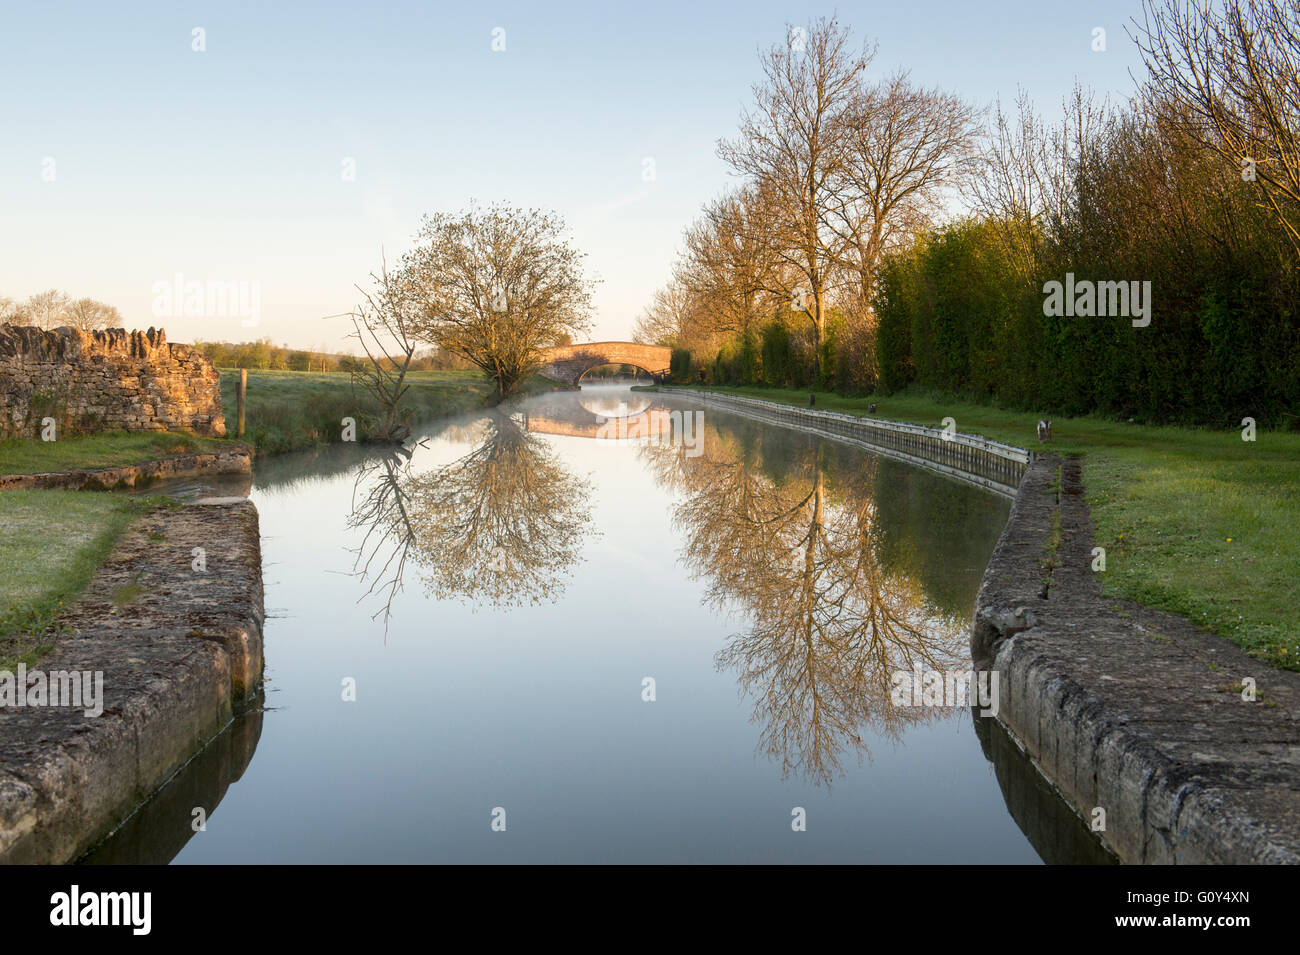 The oxford canal morning light reflections at Cropredy, Oxfordshire, England - Stock Image